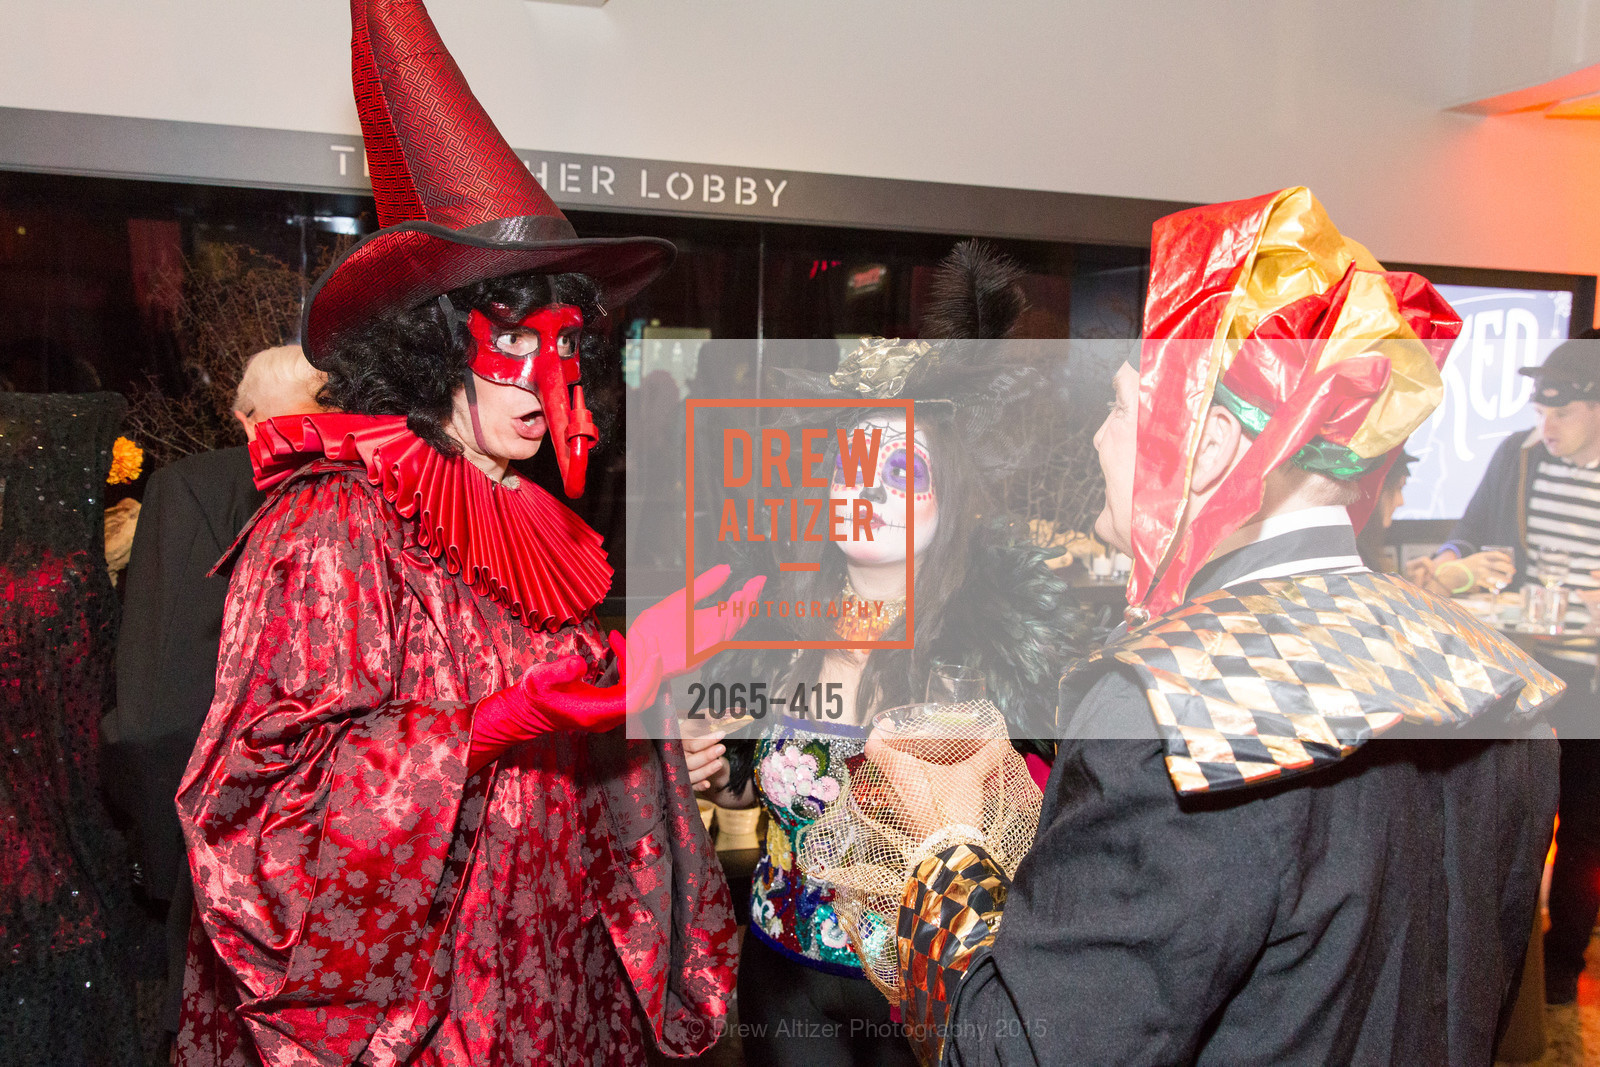 Alan Littlhales, Norea Kang, SPOOKED AT THE STRAND Presented by the American Conservatory Theater, The Strand Theater. 1127 Market Street, October 26th, 2015,Drew Altizer, Drew Altizer Photography, full-service agency, private events, San Francisco photographer, photographer california